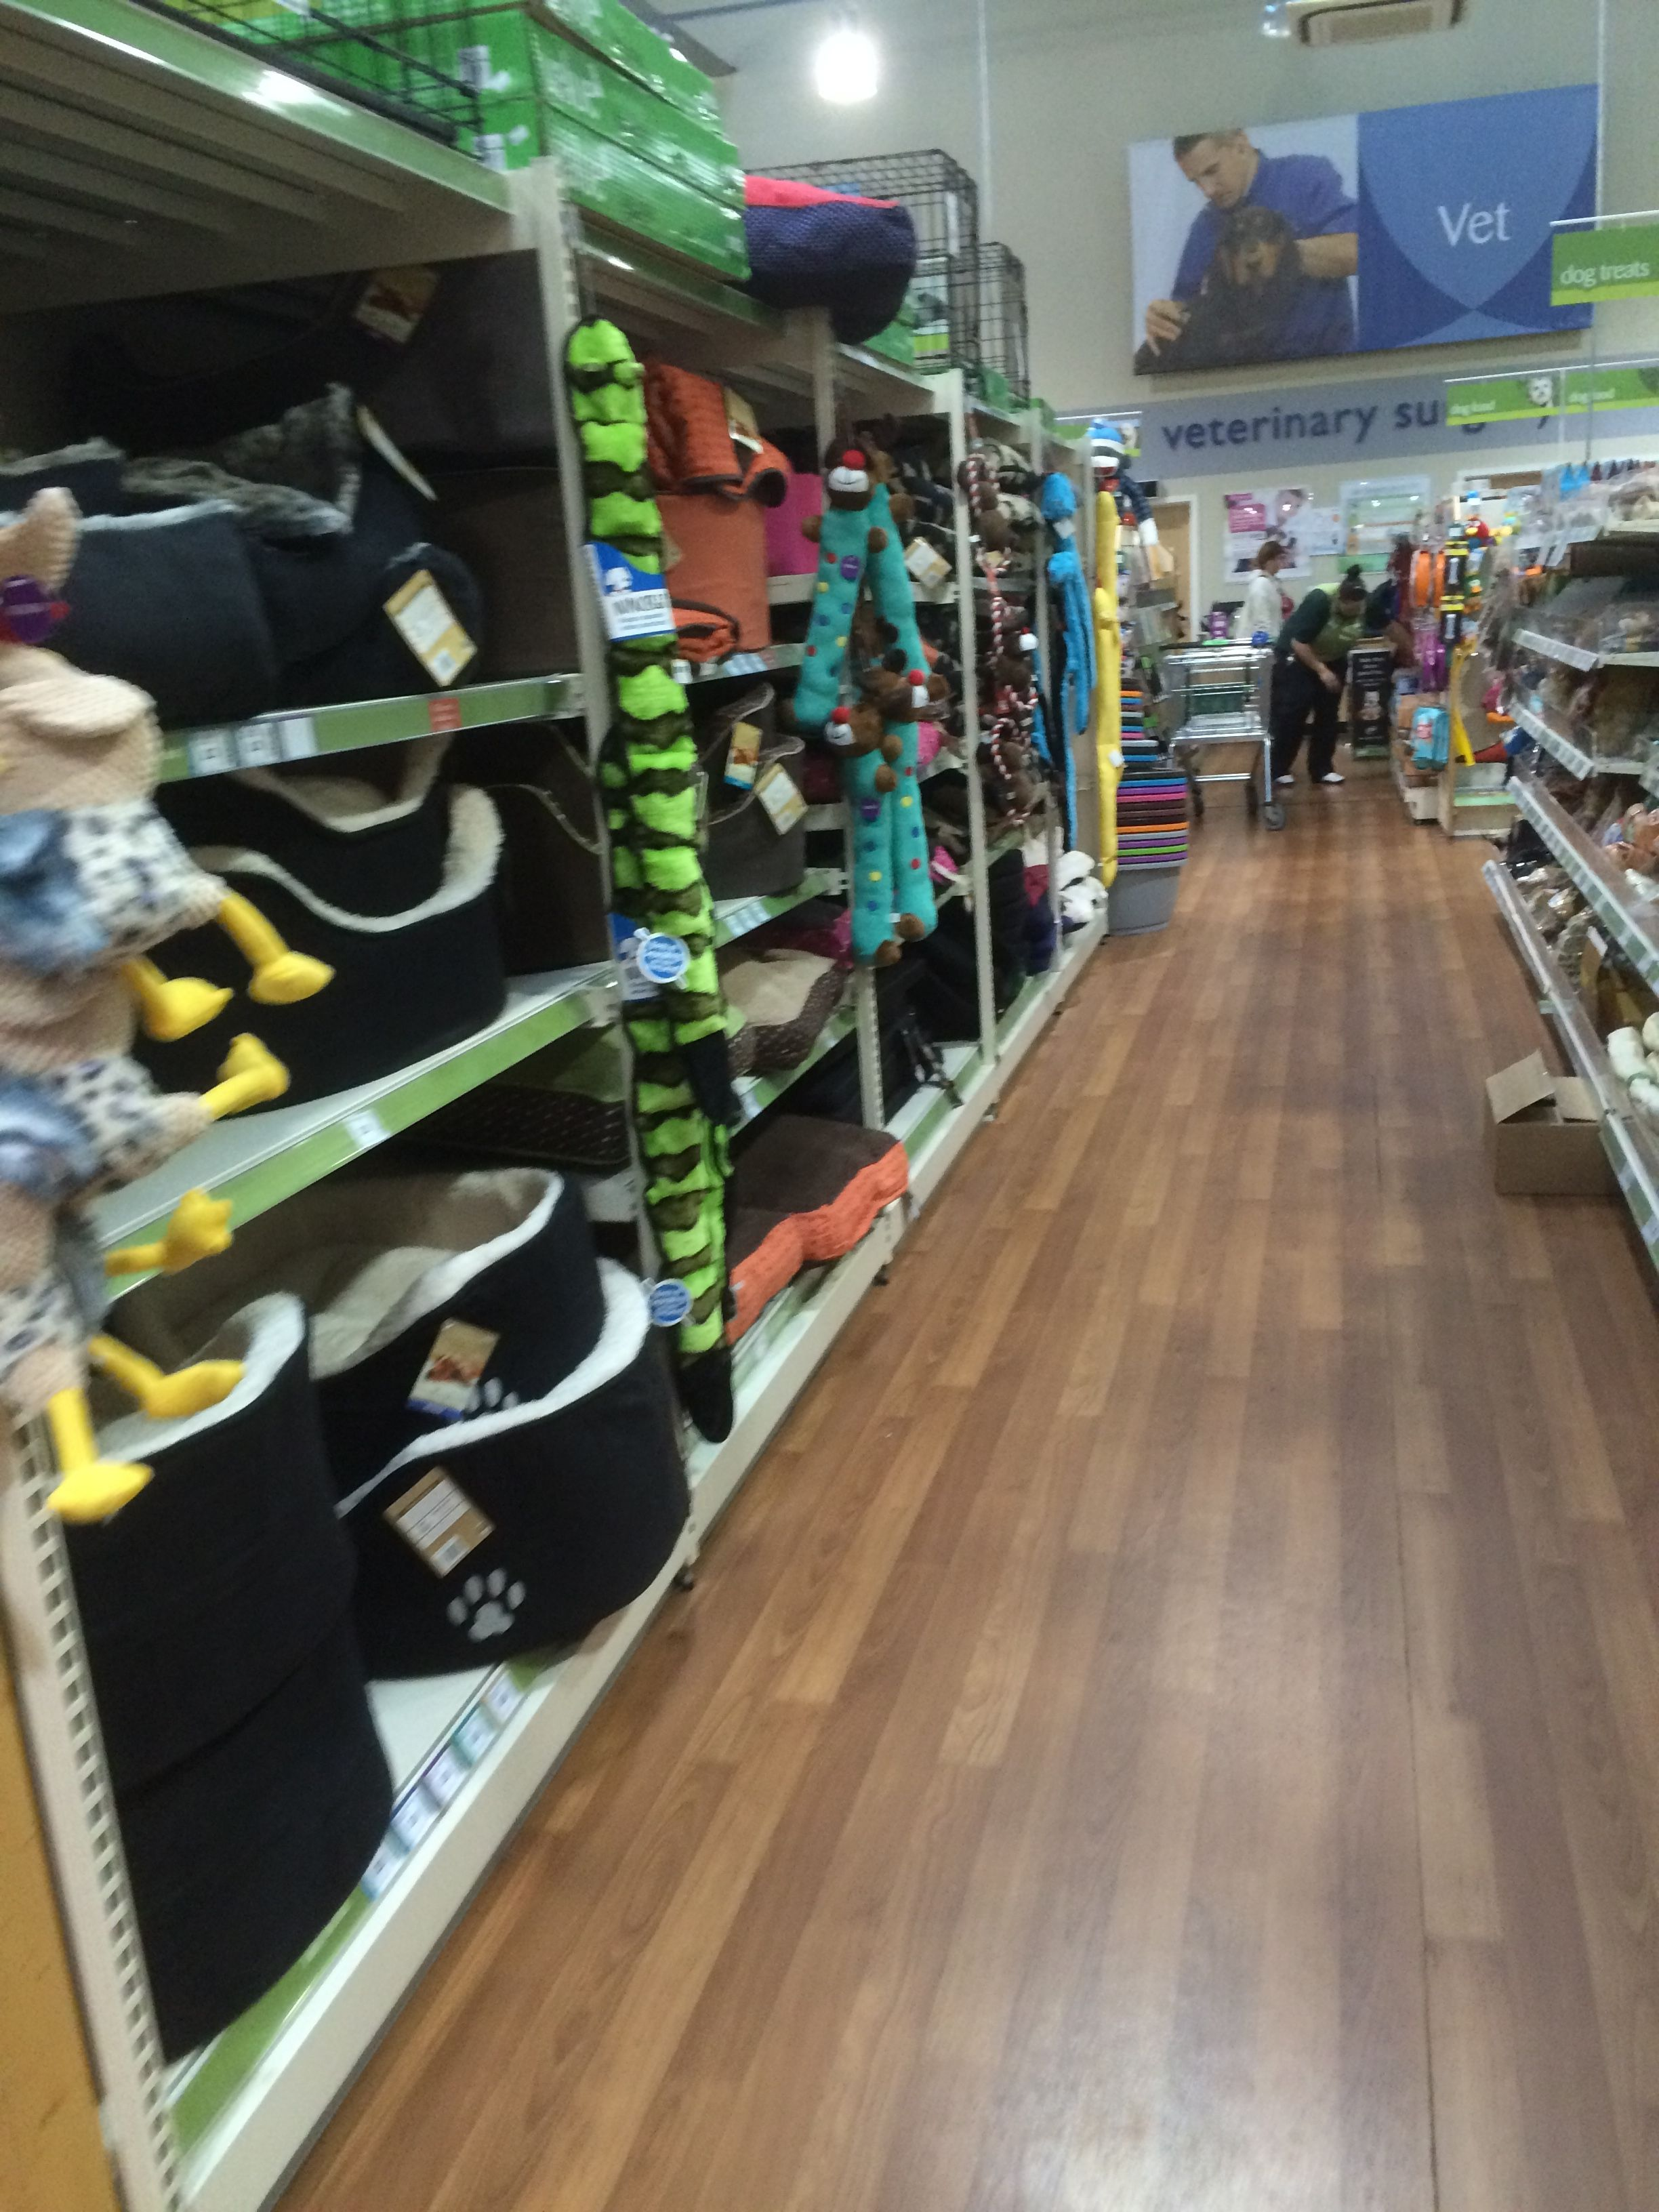 Pets At Home Netherfield Nottingham Pet Shop Pet Services Vets Grooming Layout Landscape Cust Animal House Visual Merchandising Robust Design